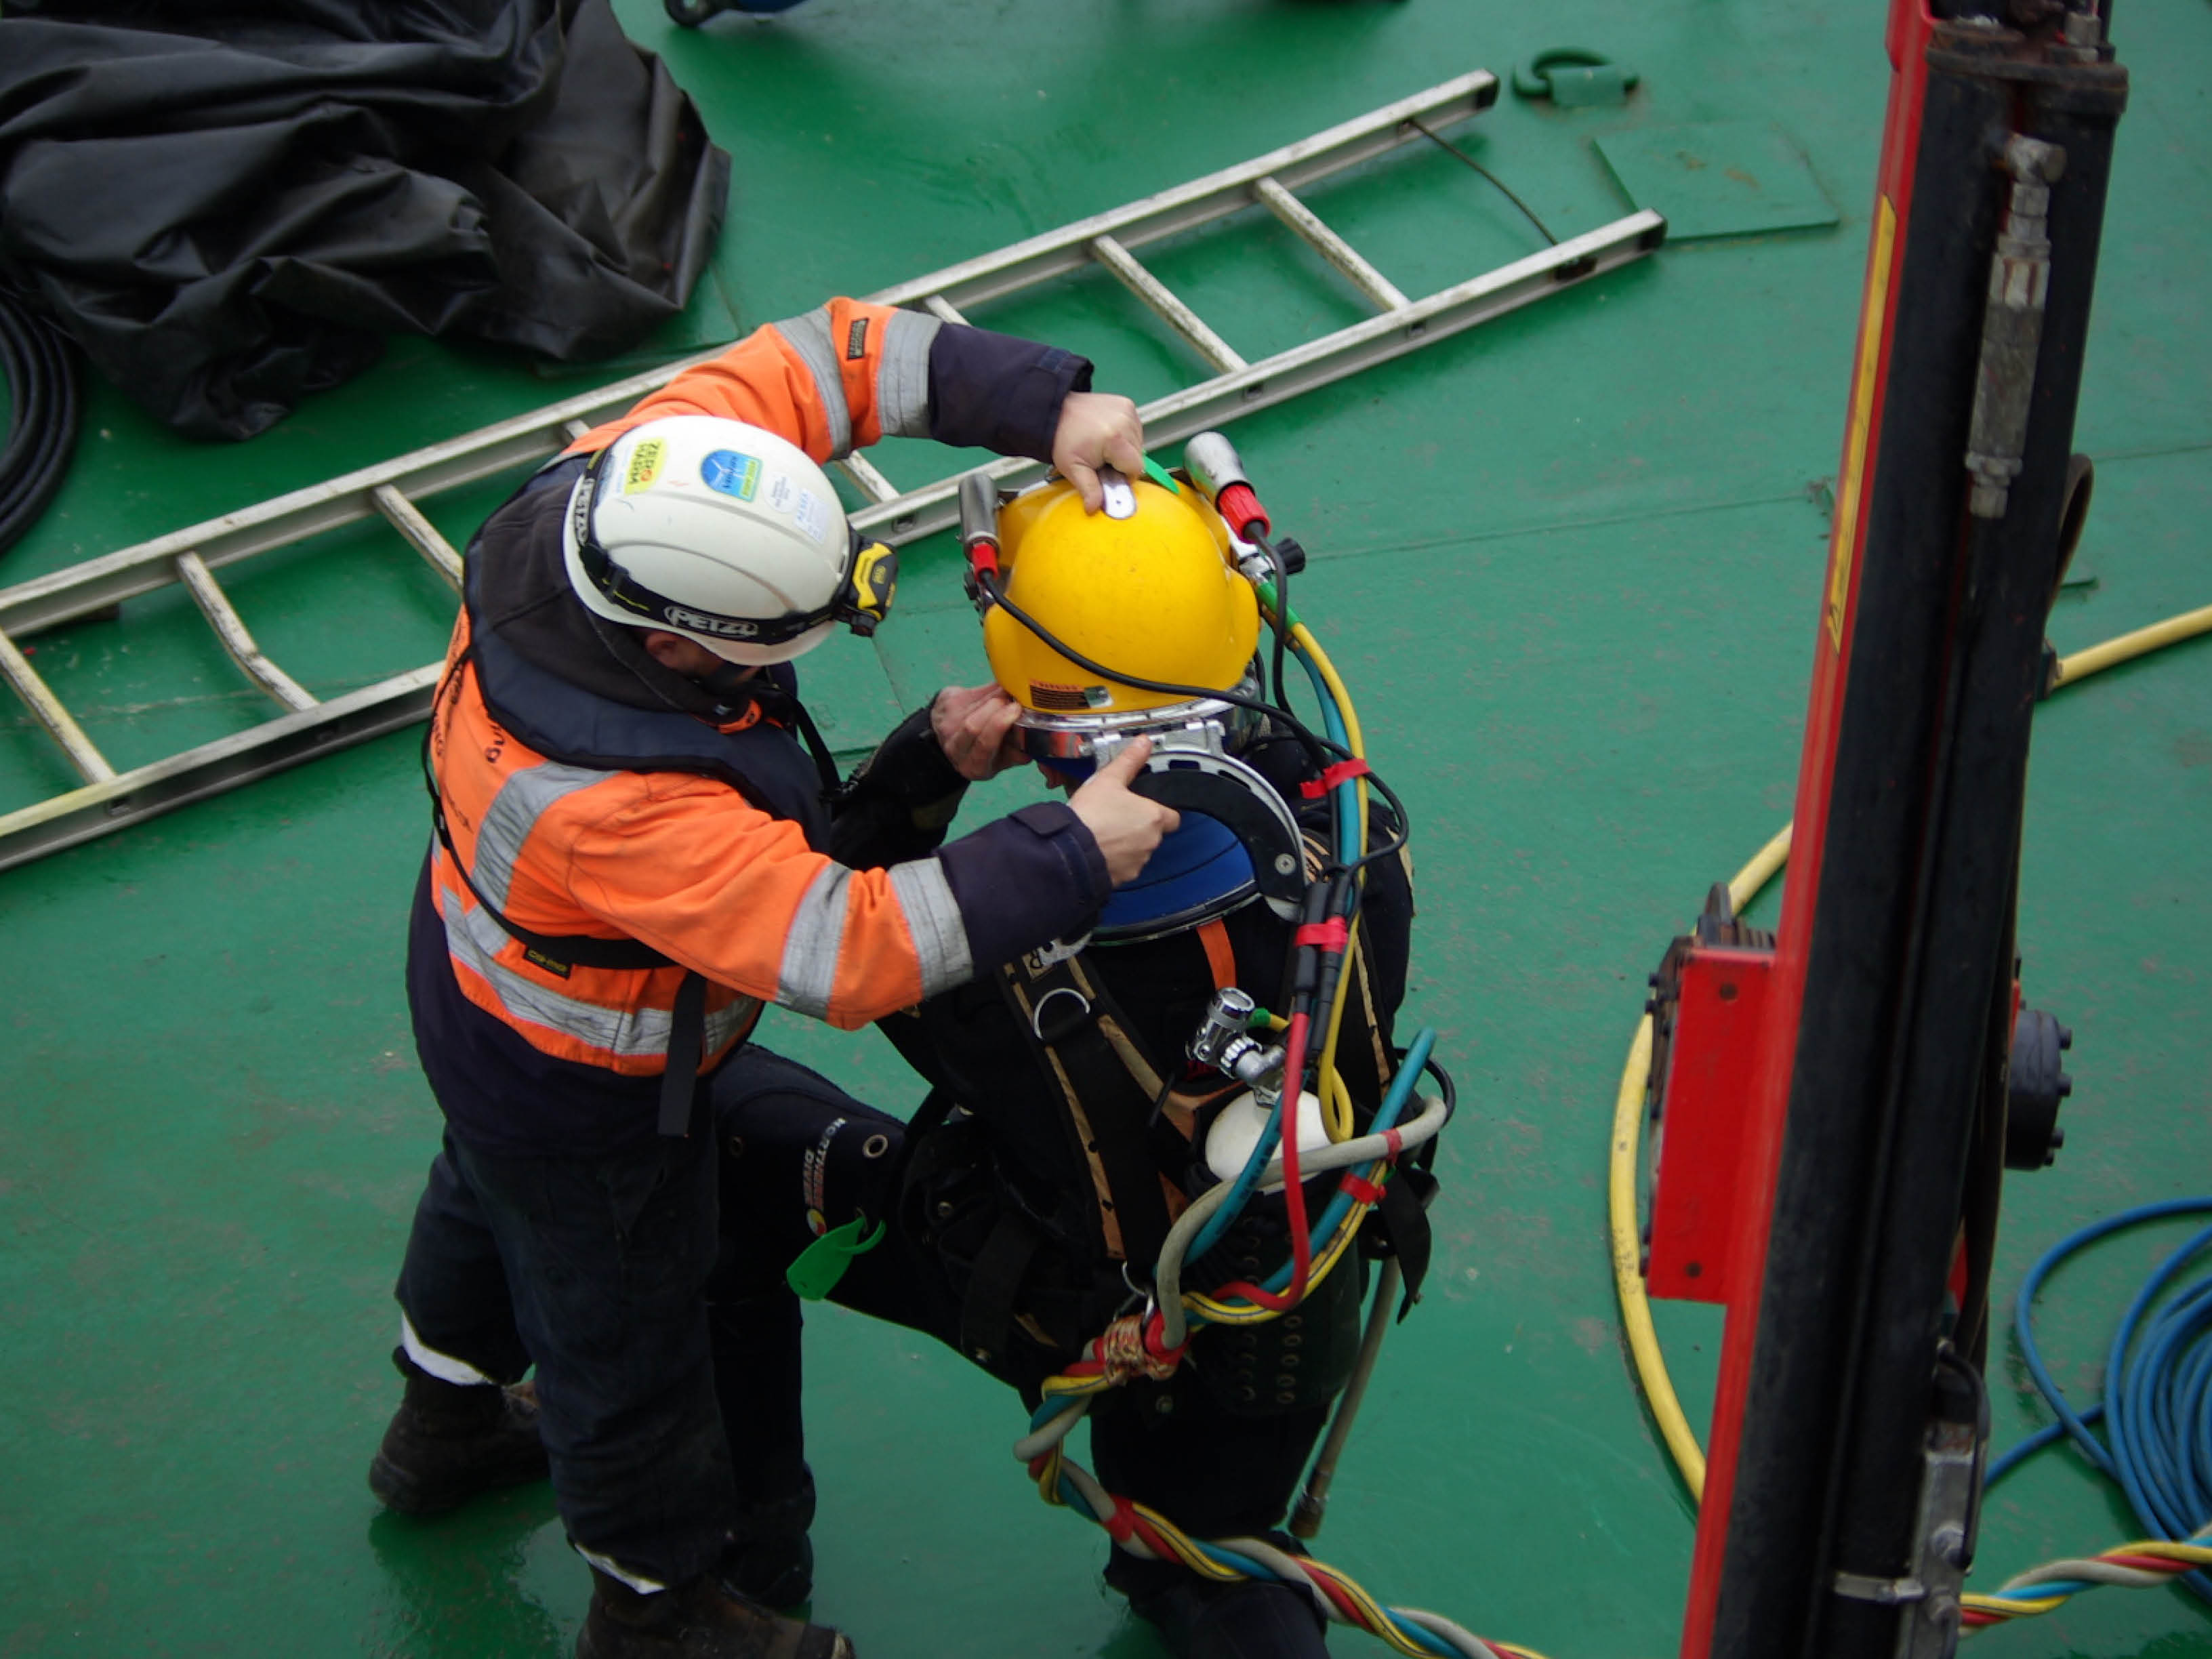 HSE-Q diving equipment in use